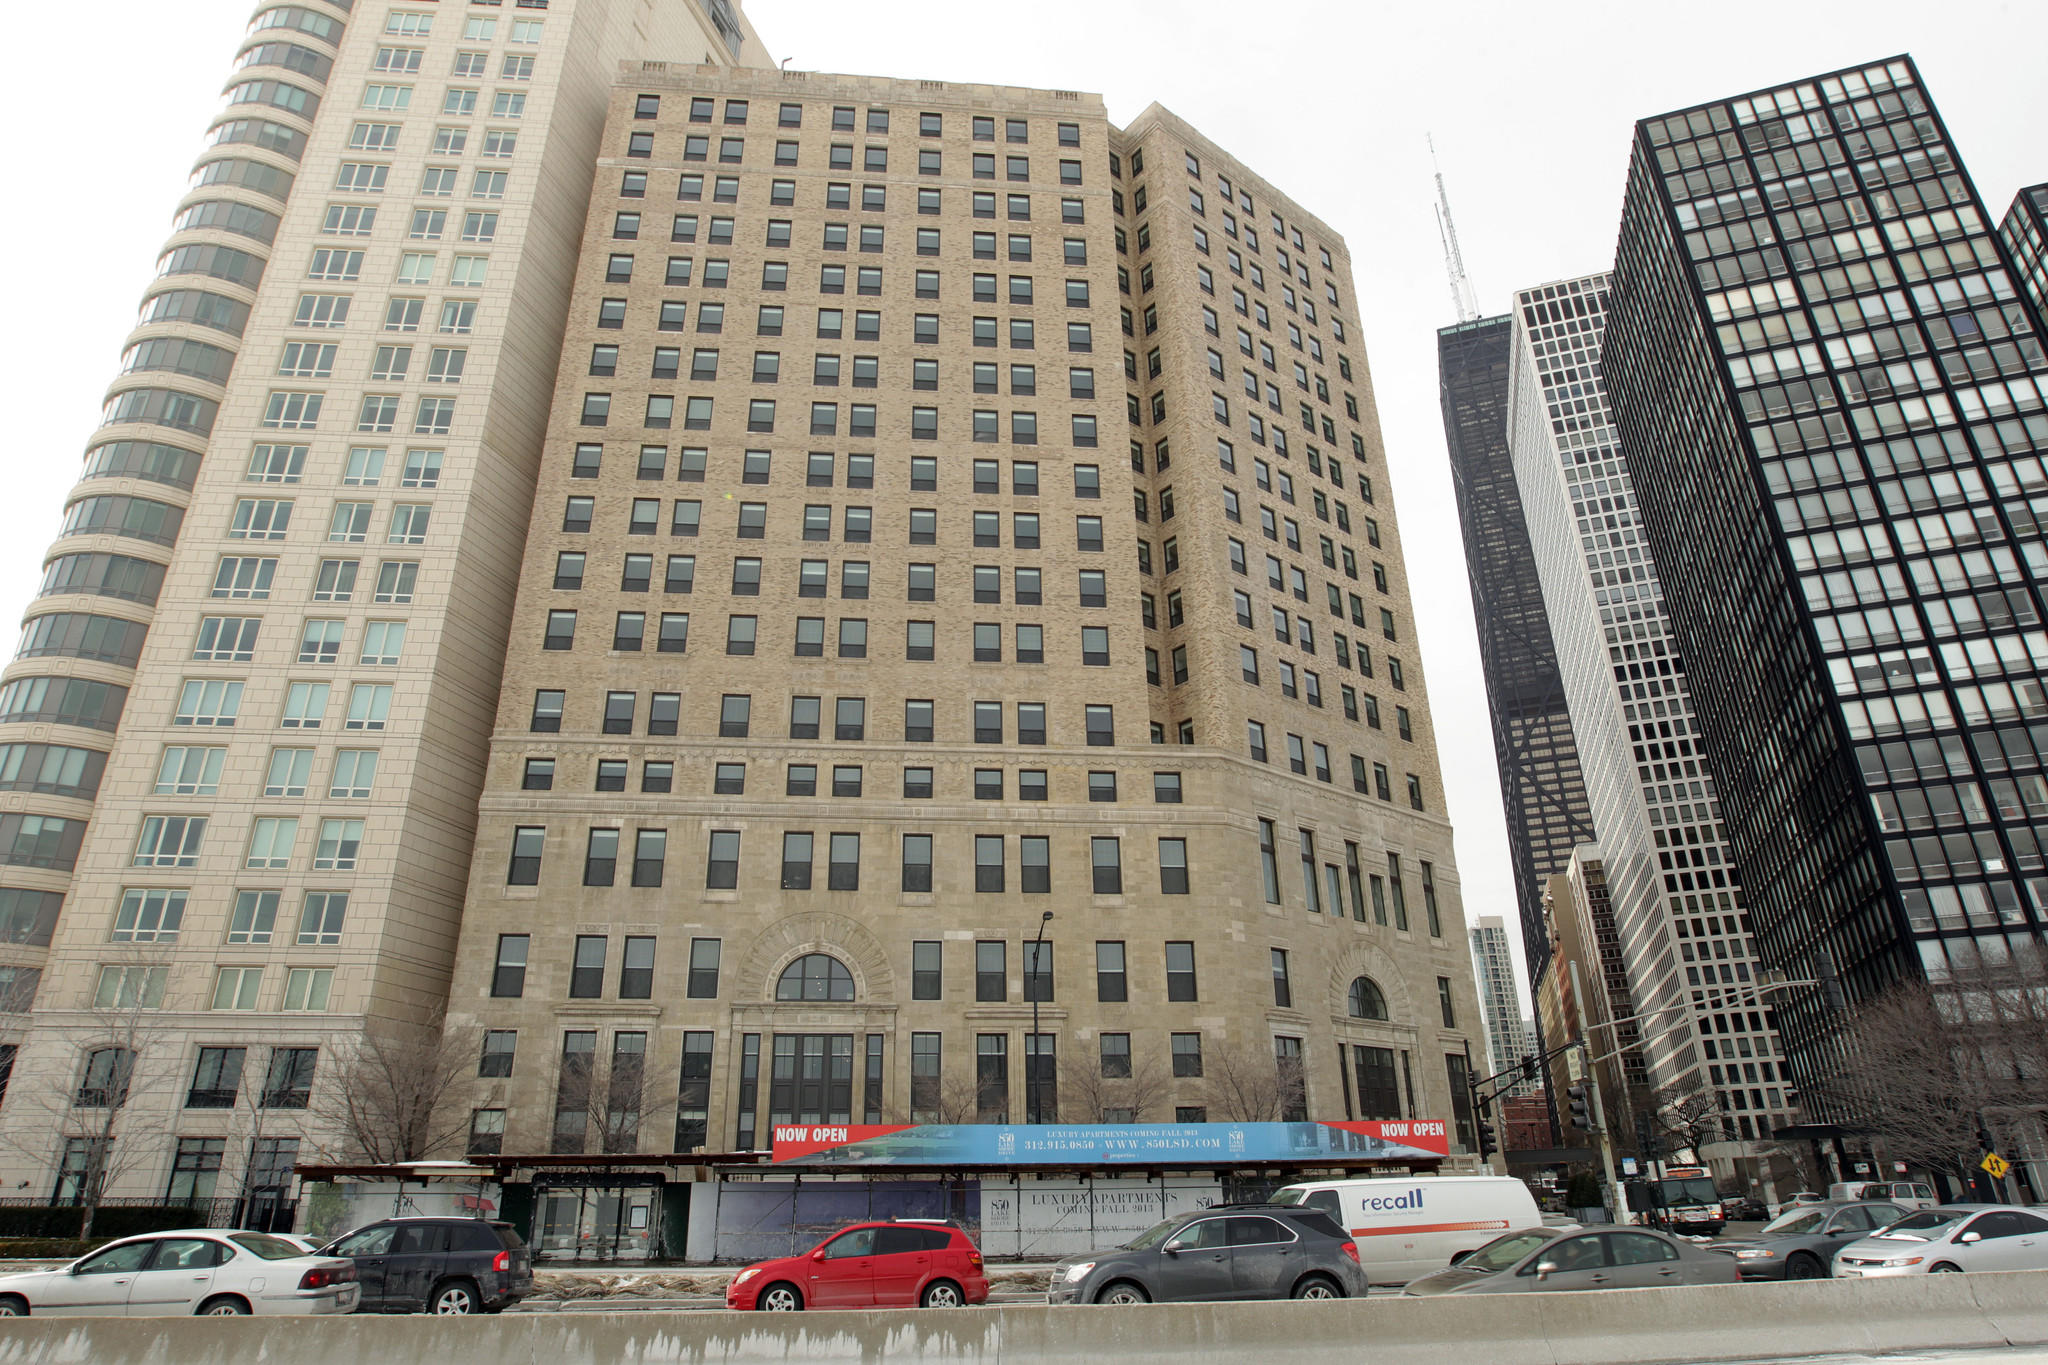 The former Lake Shore Athletic Club, now luxury apartments.